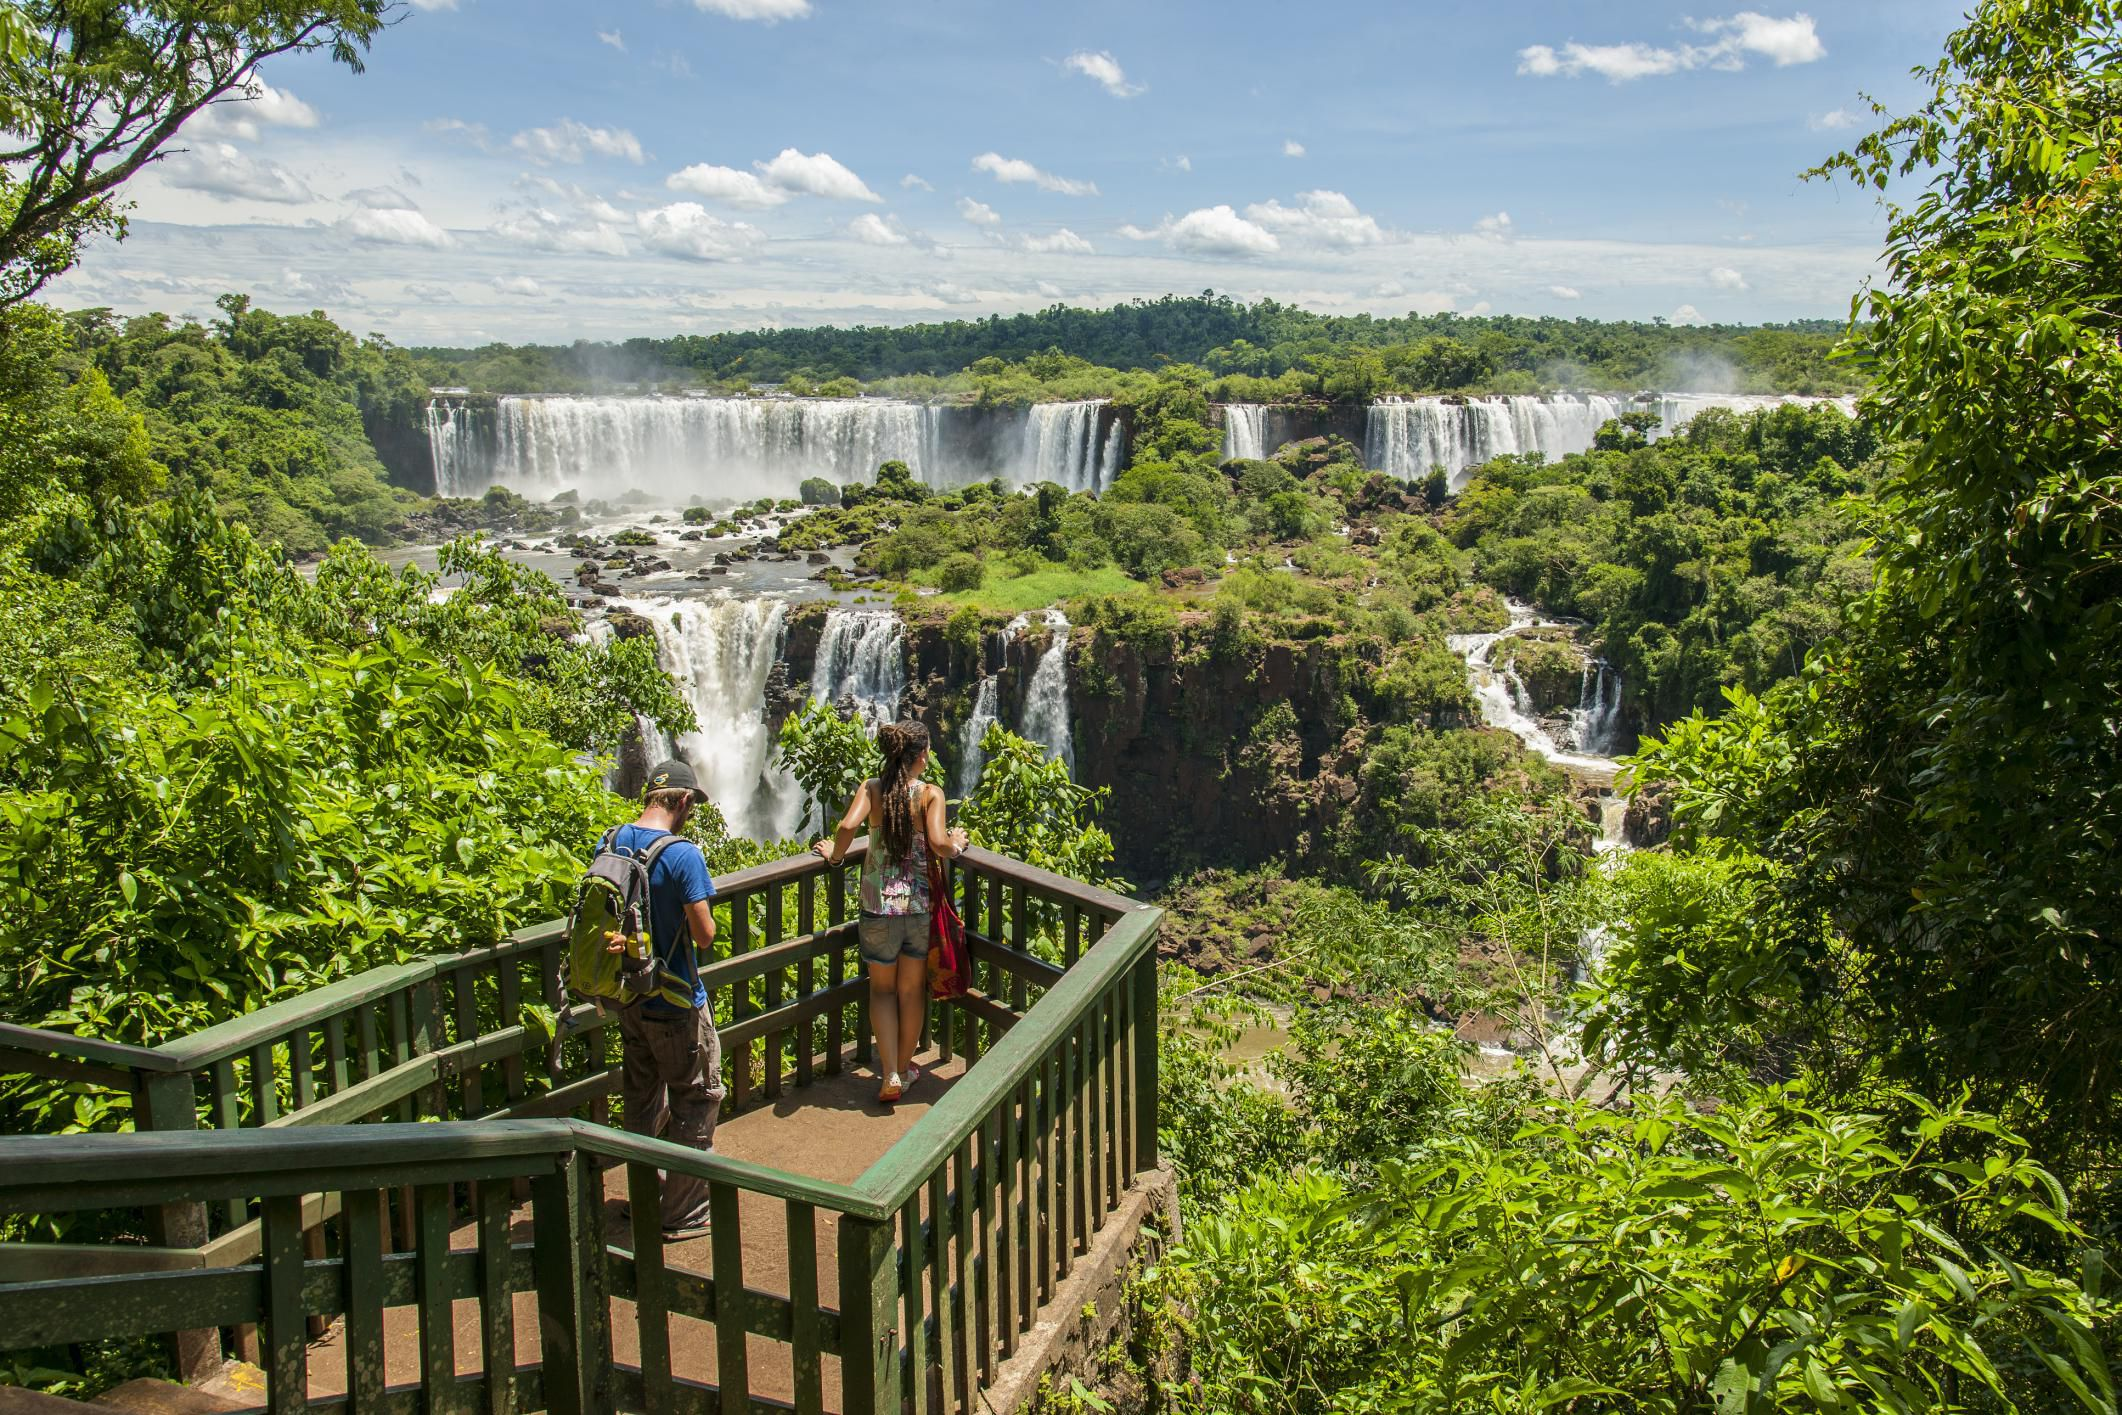 Iguazu Falls Travel Guide ArgentinaBrazil Border South America - 10 amazing things to see in iguazu national park argentina